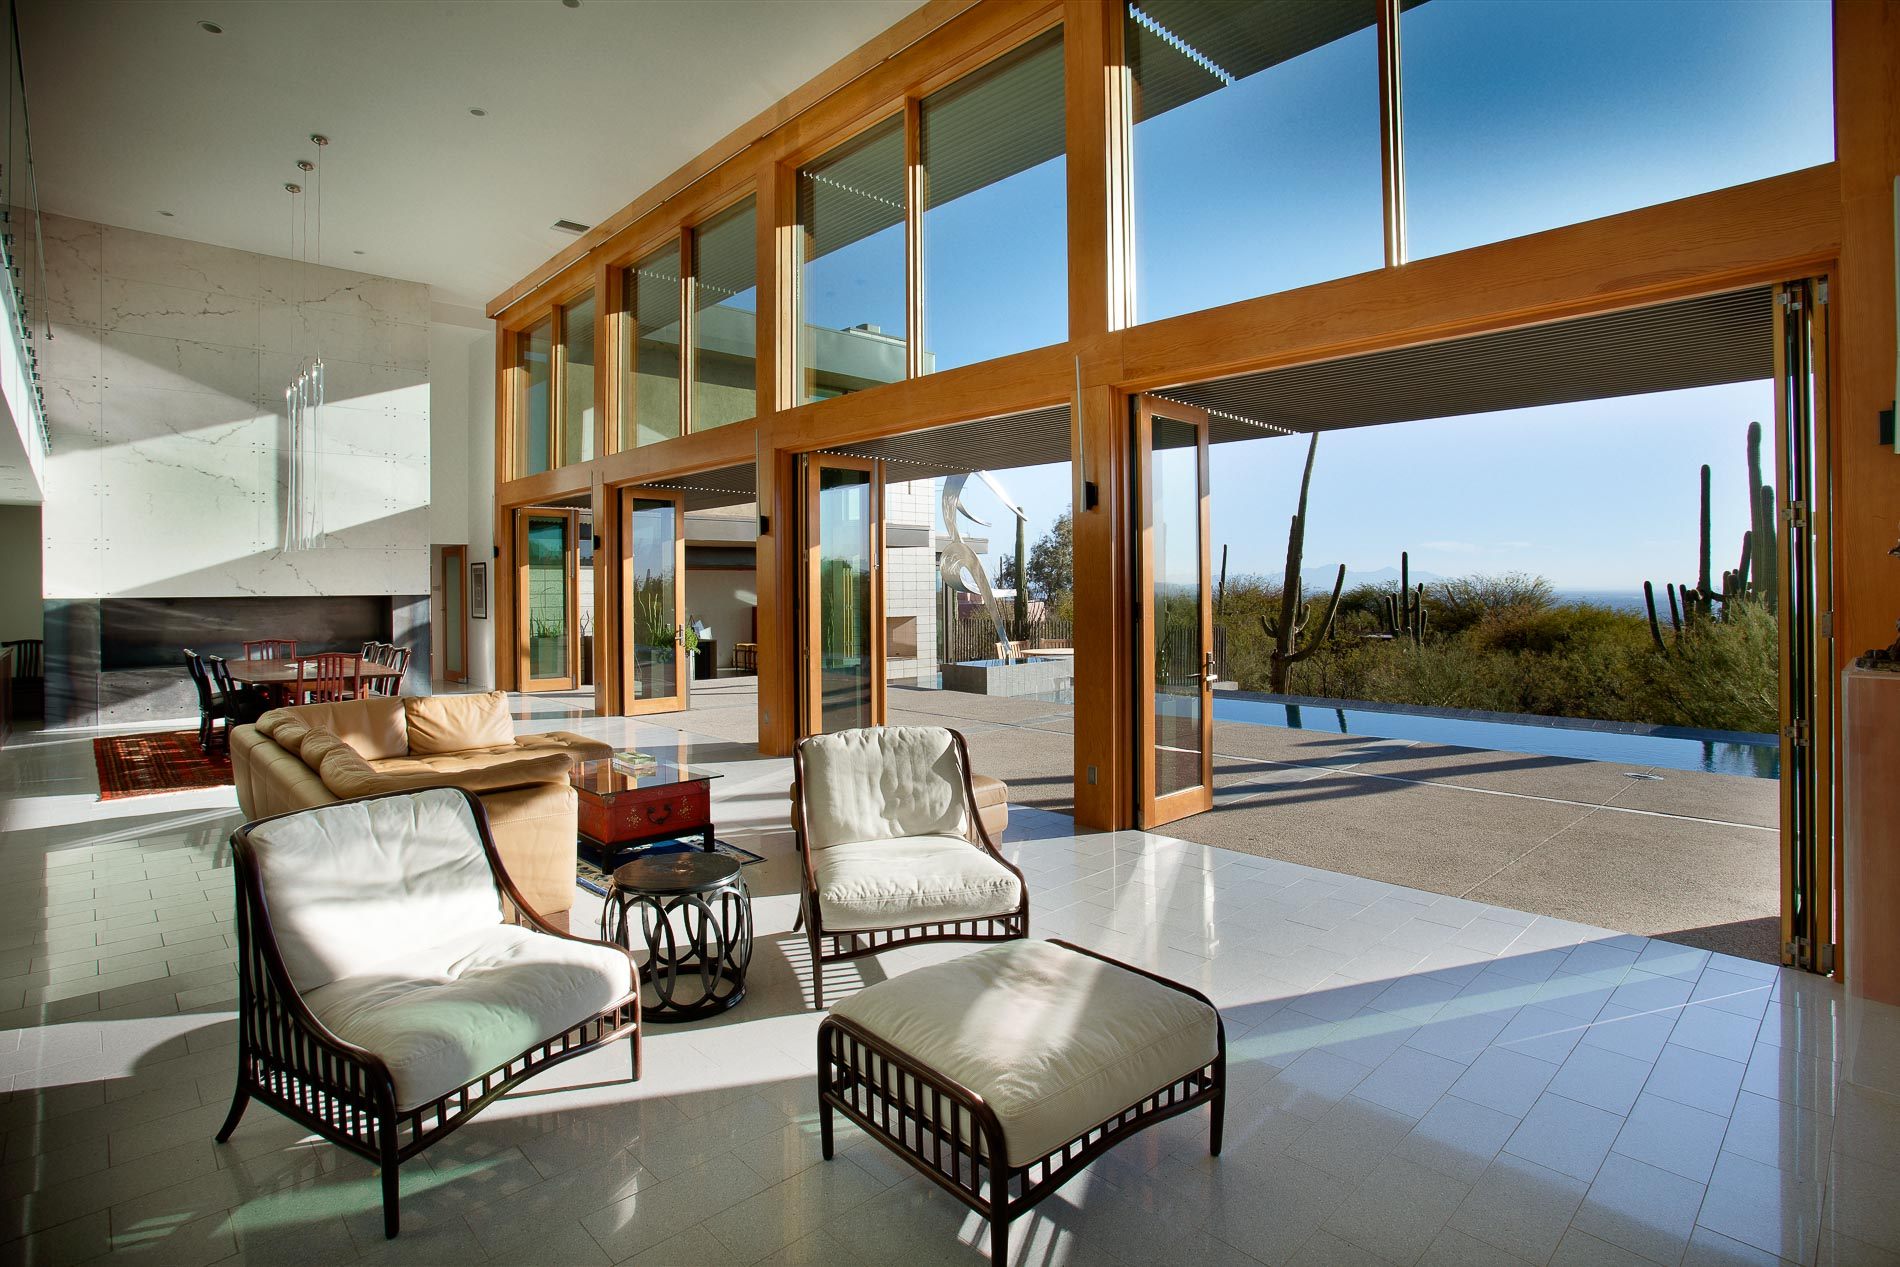 Sierra Pacific Windows - Index - Residential, Commercial ...